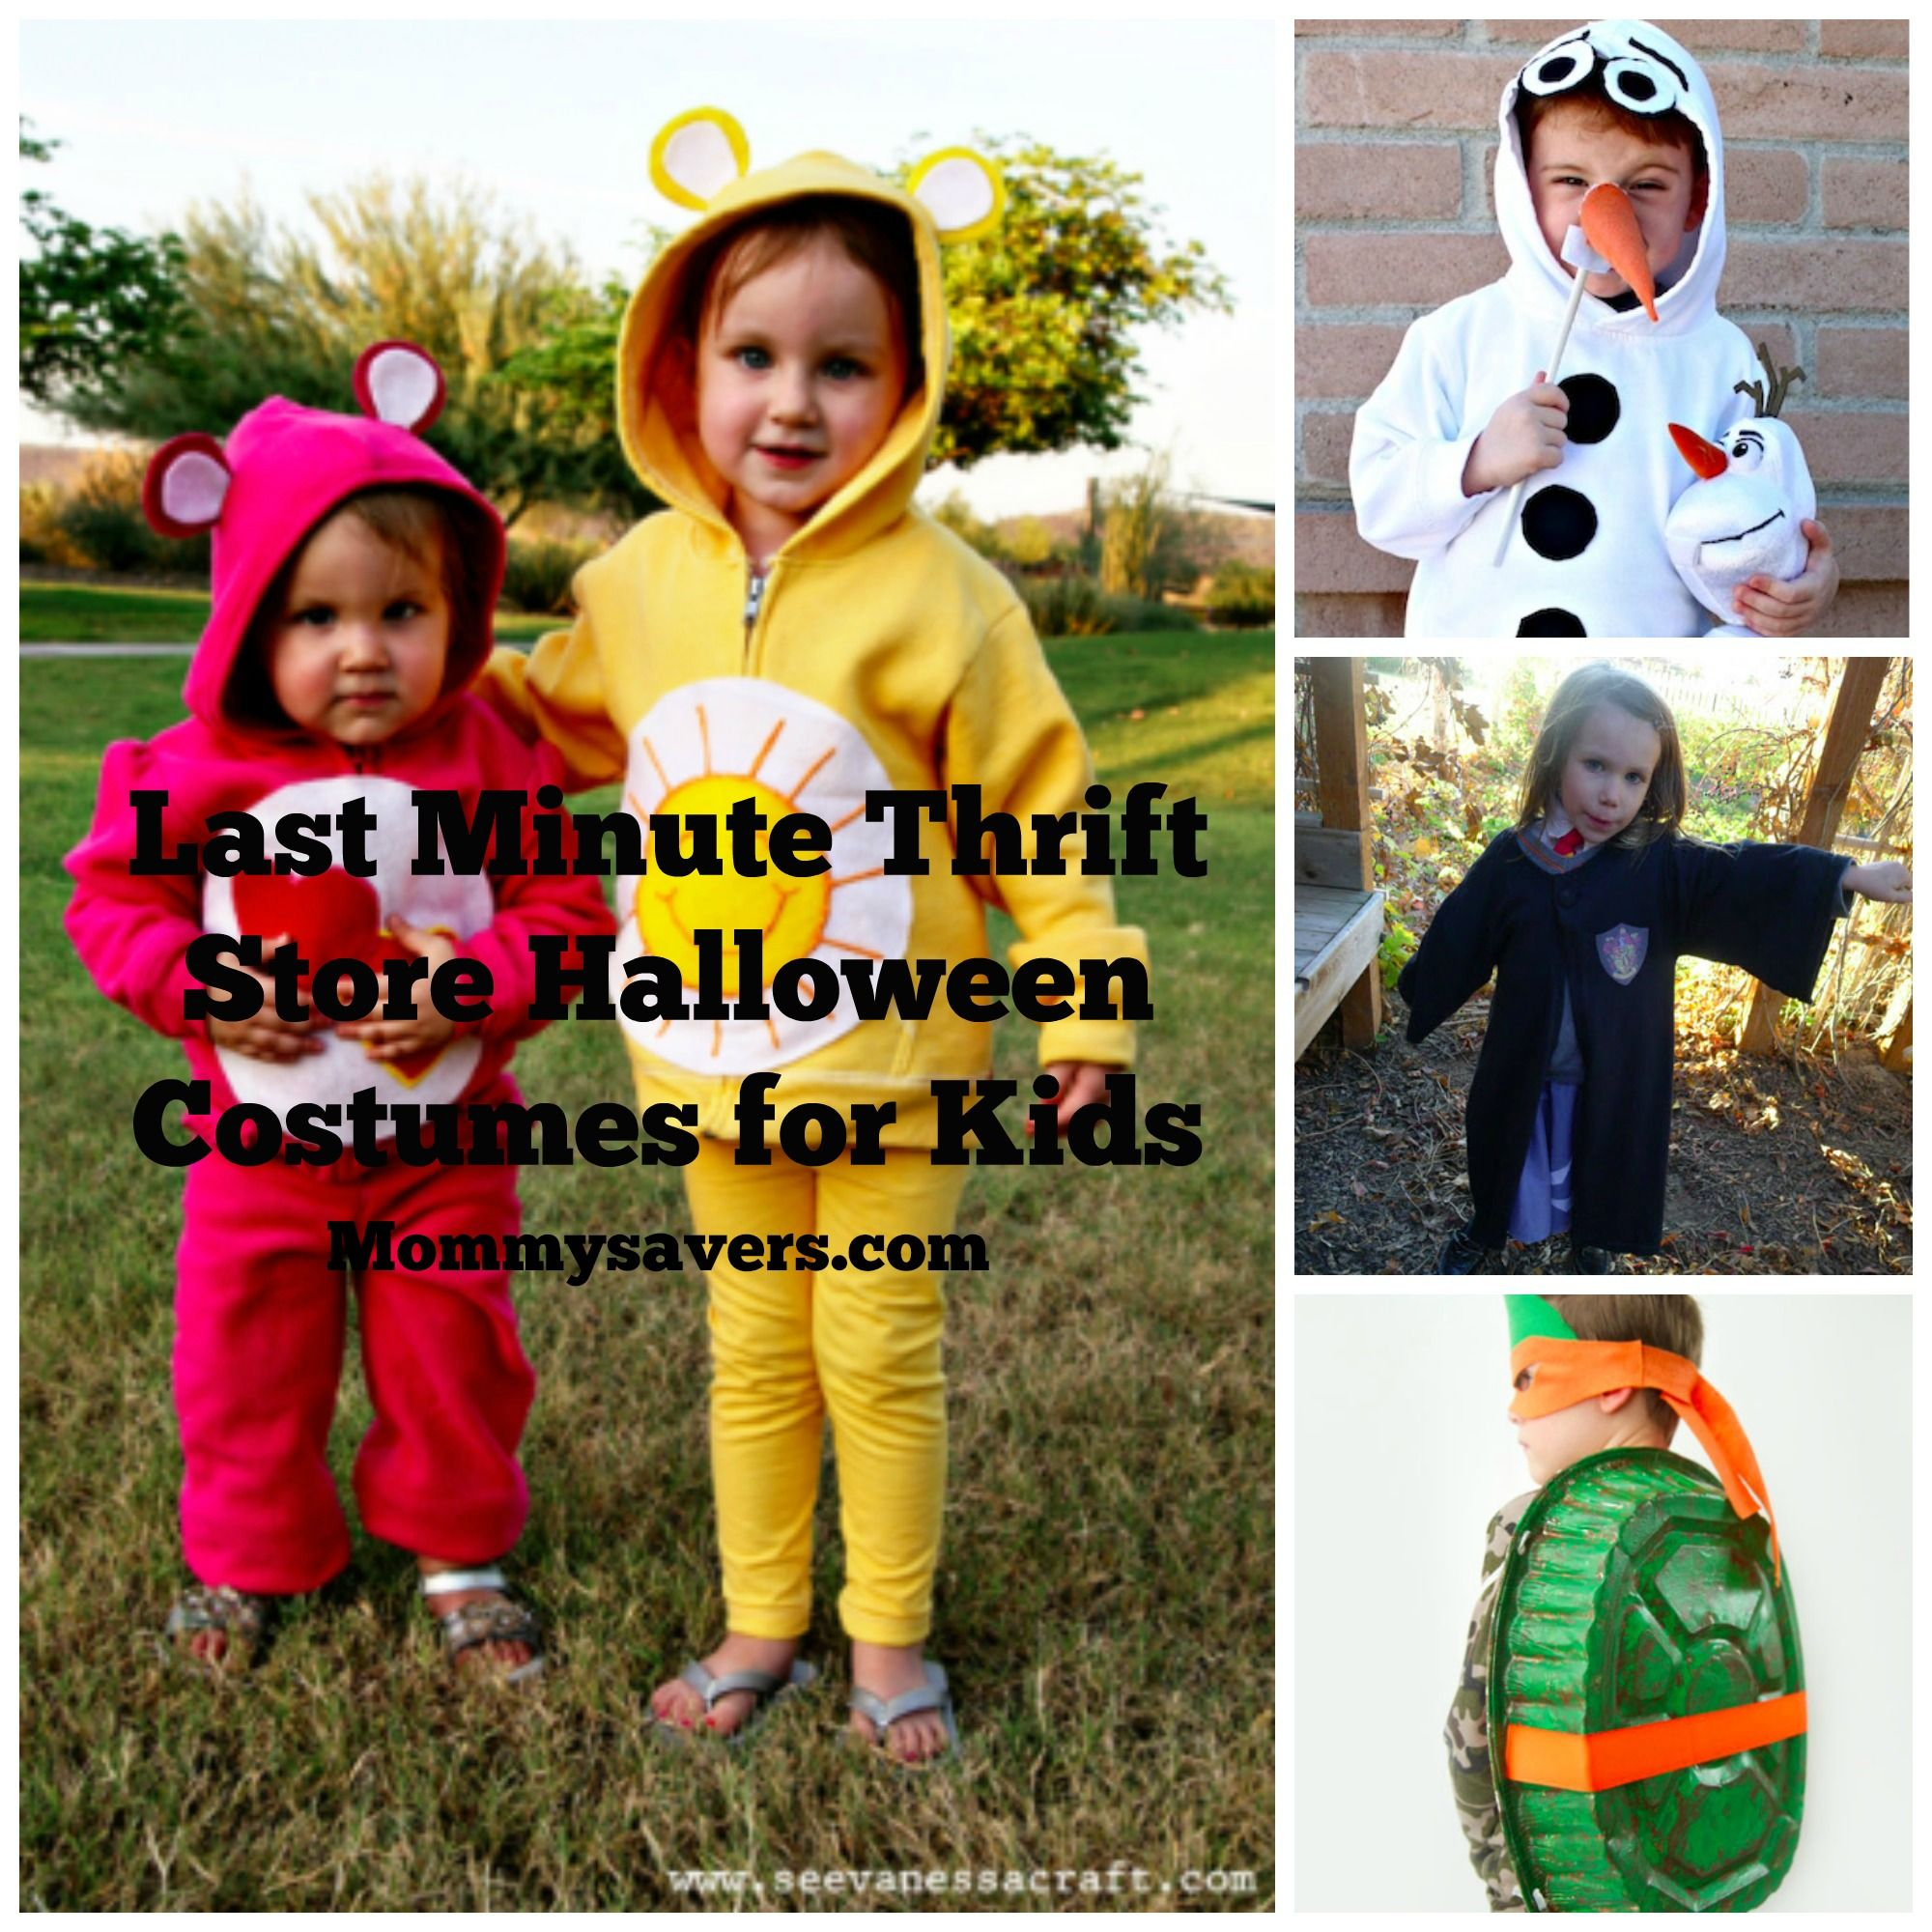 Last Minute Thrift Store Halloween Costumes for Kids